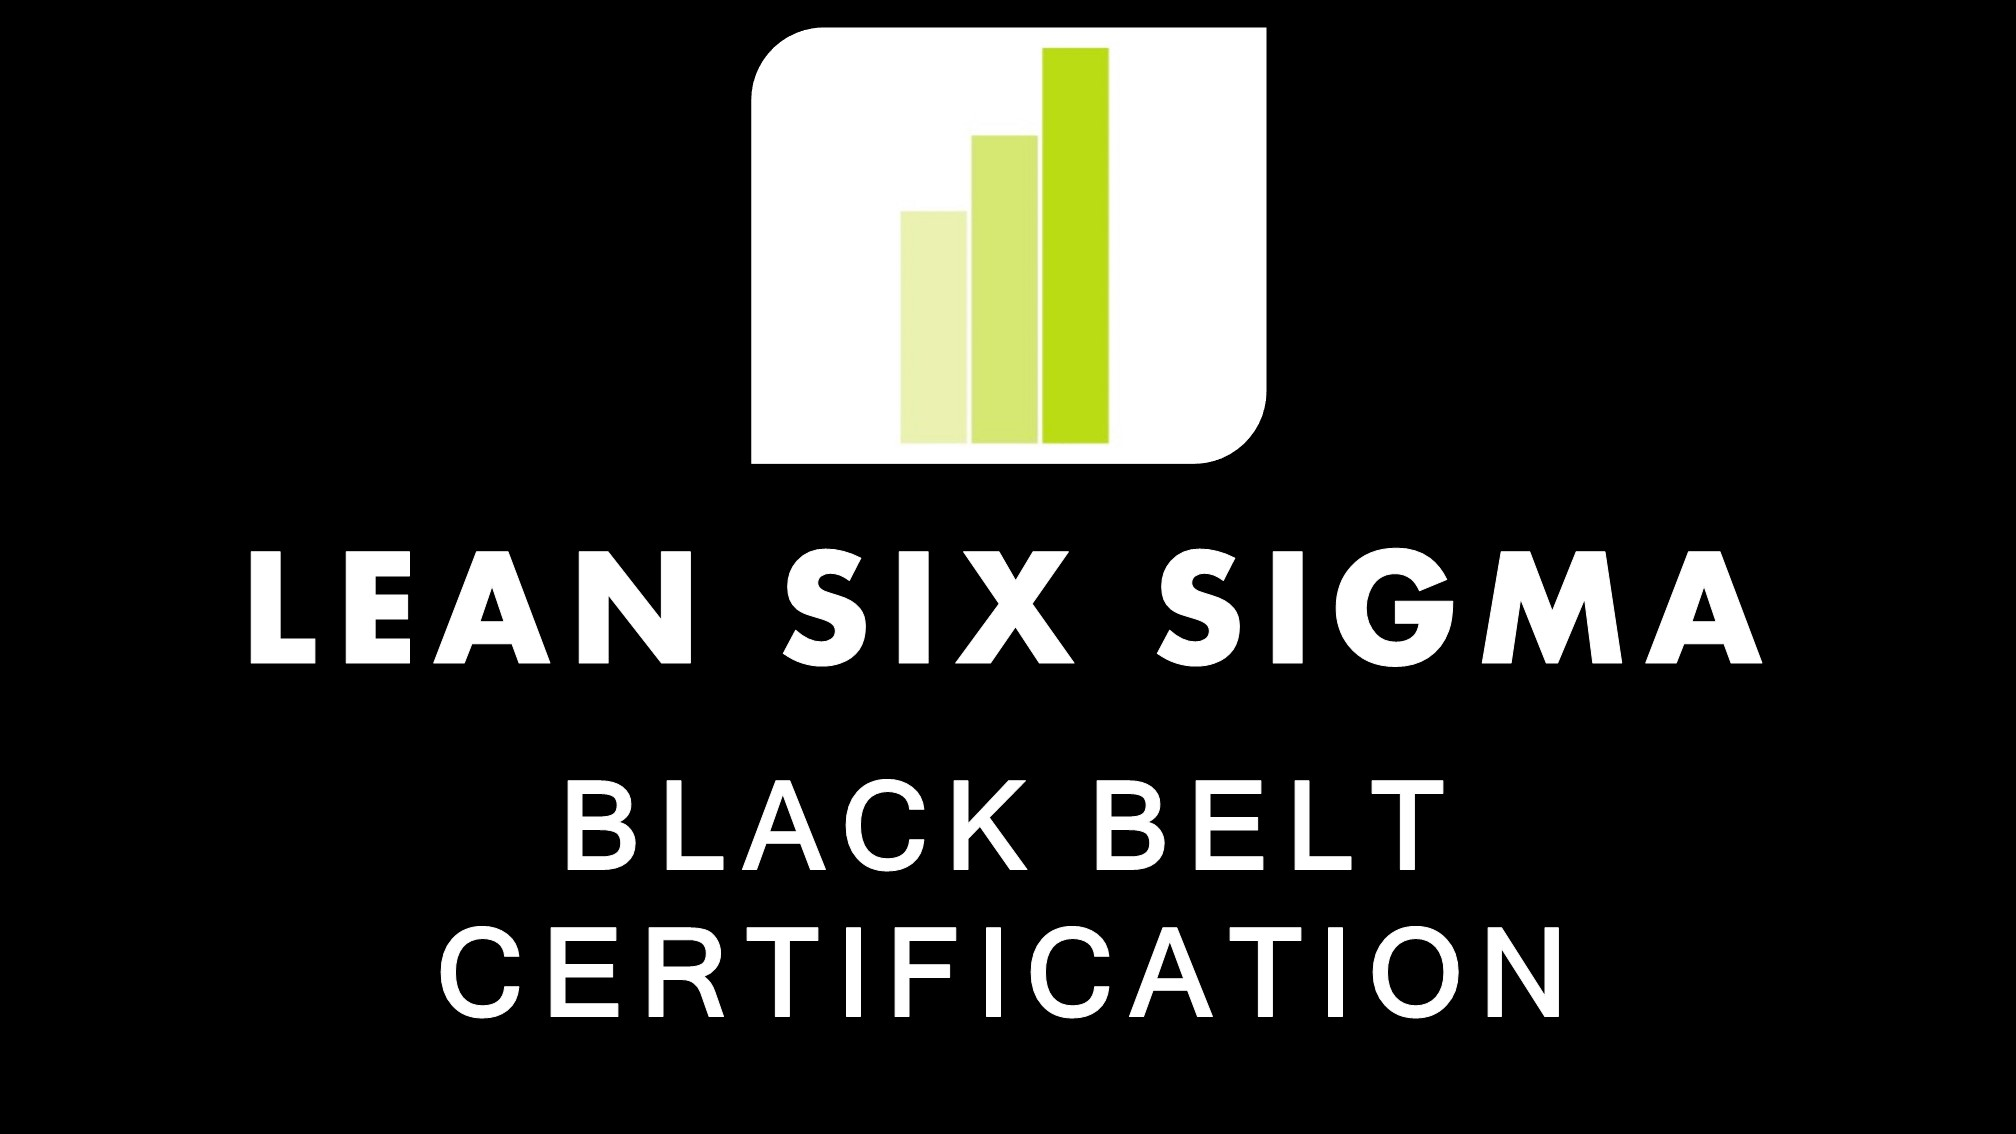 Lean Six Sigma Black Belt Training Course And Certification